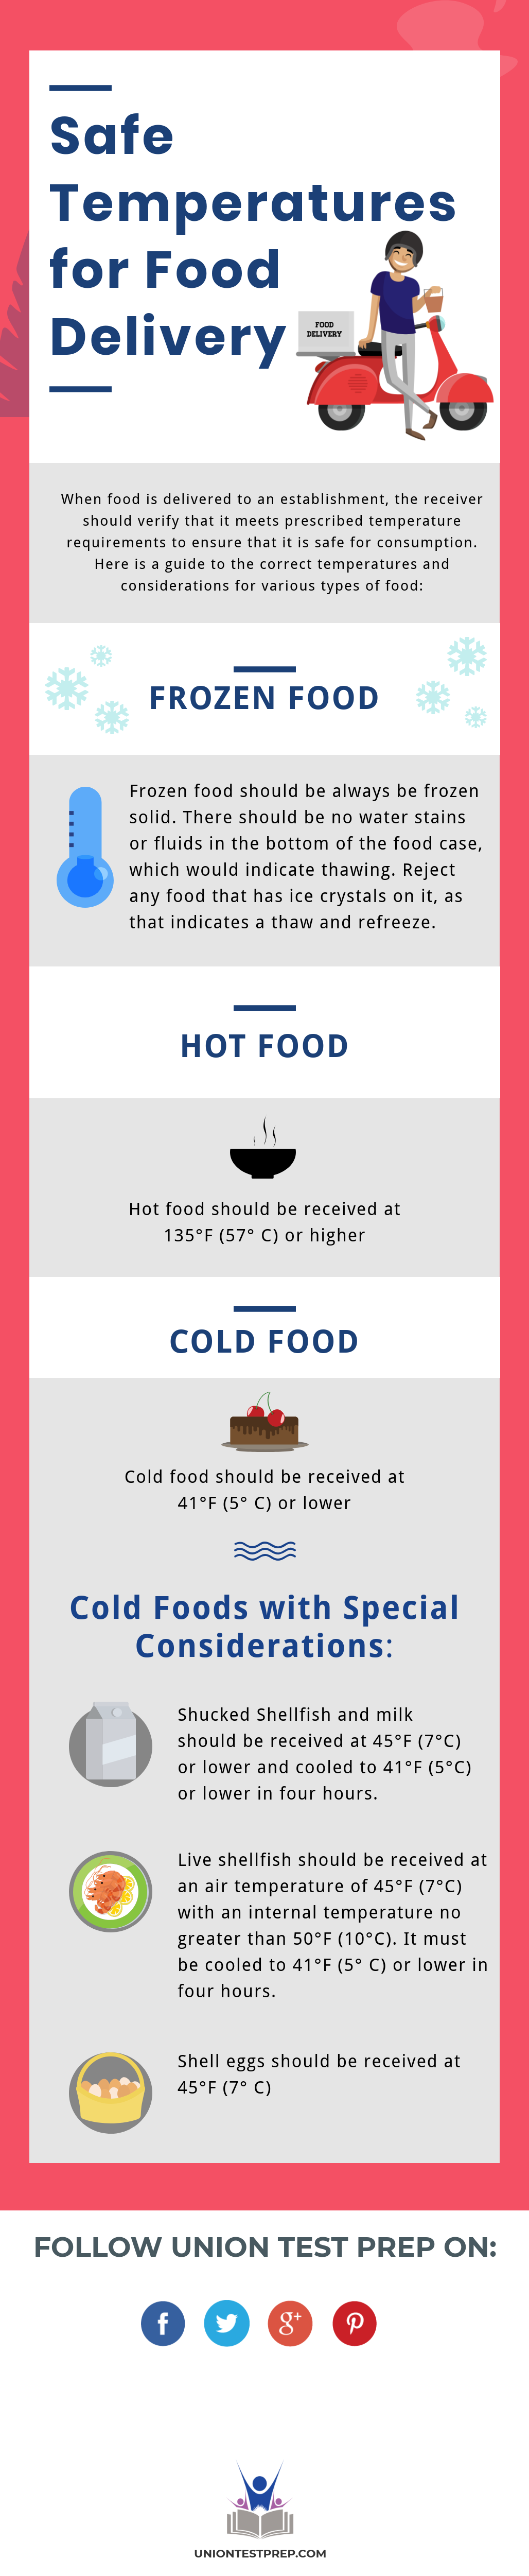 safe temperatures food delivery